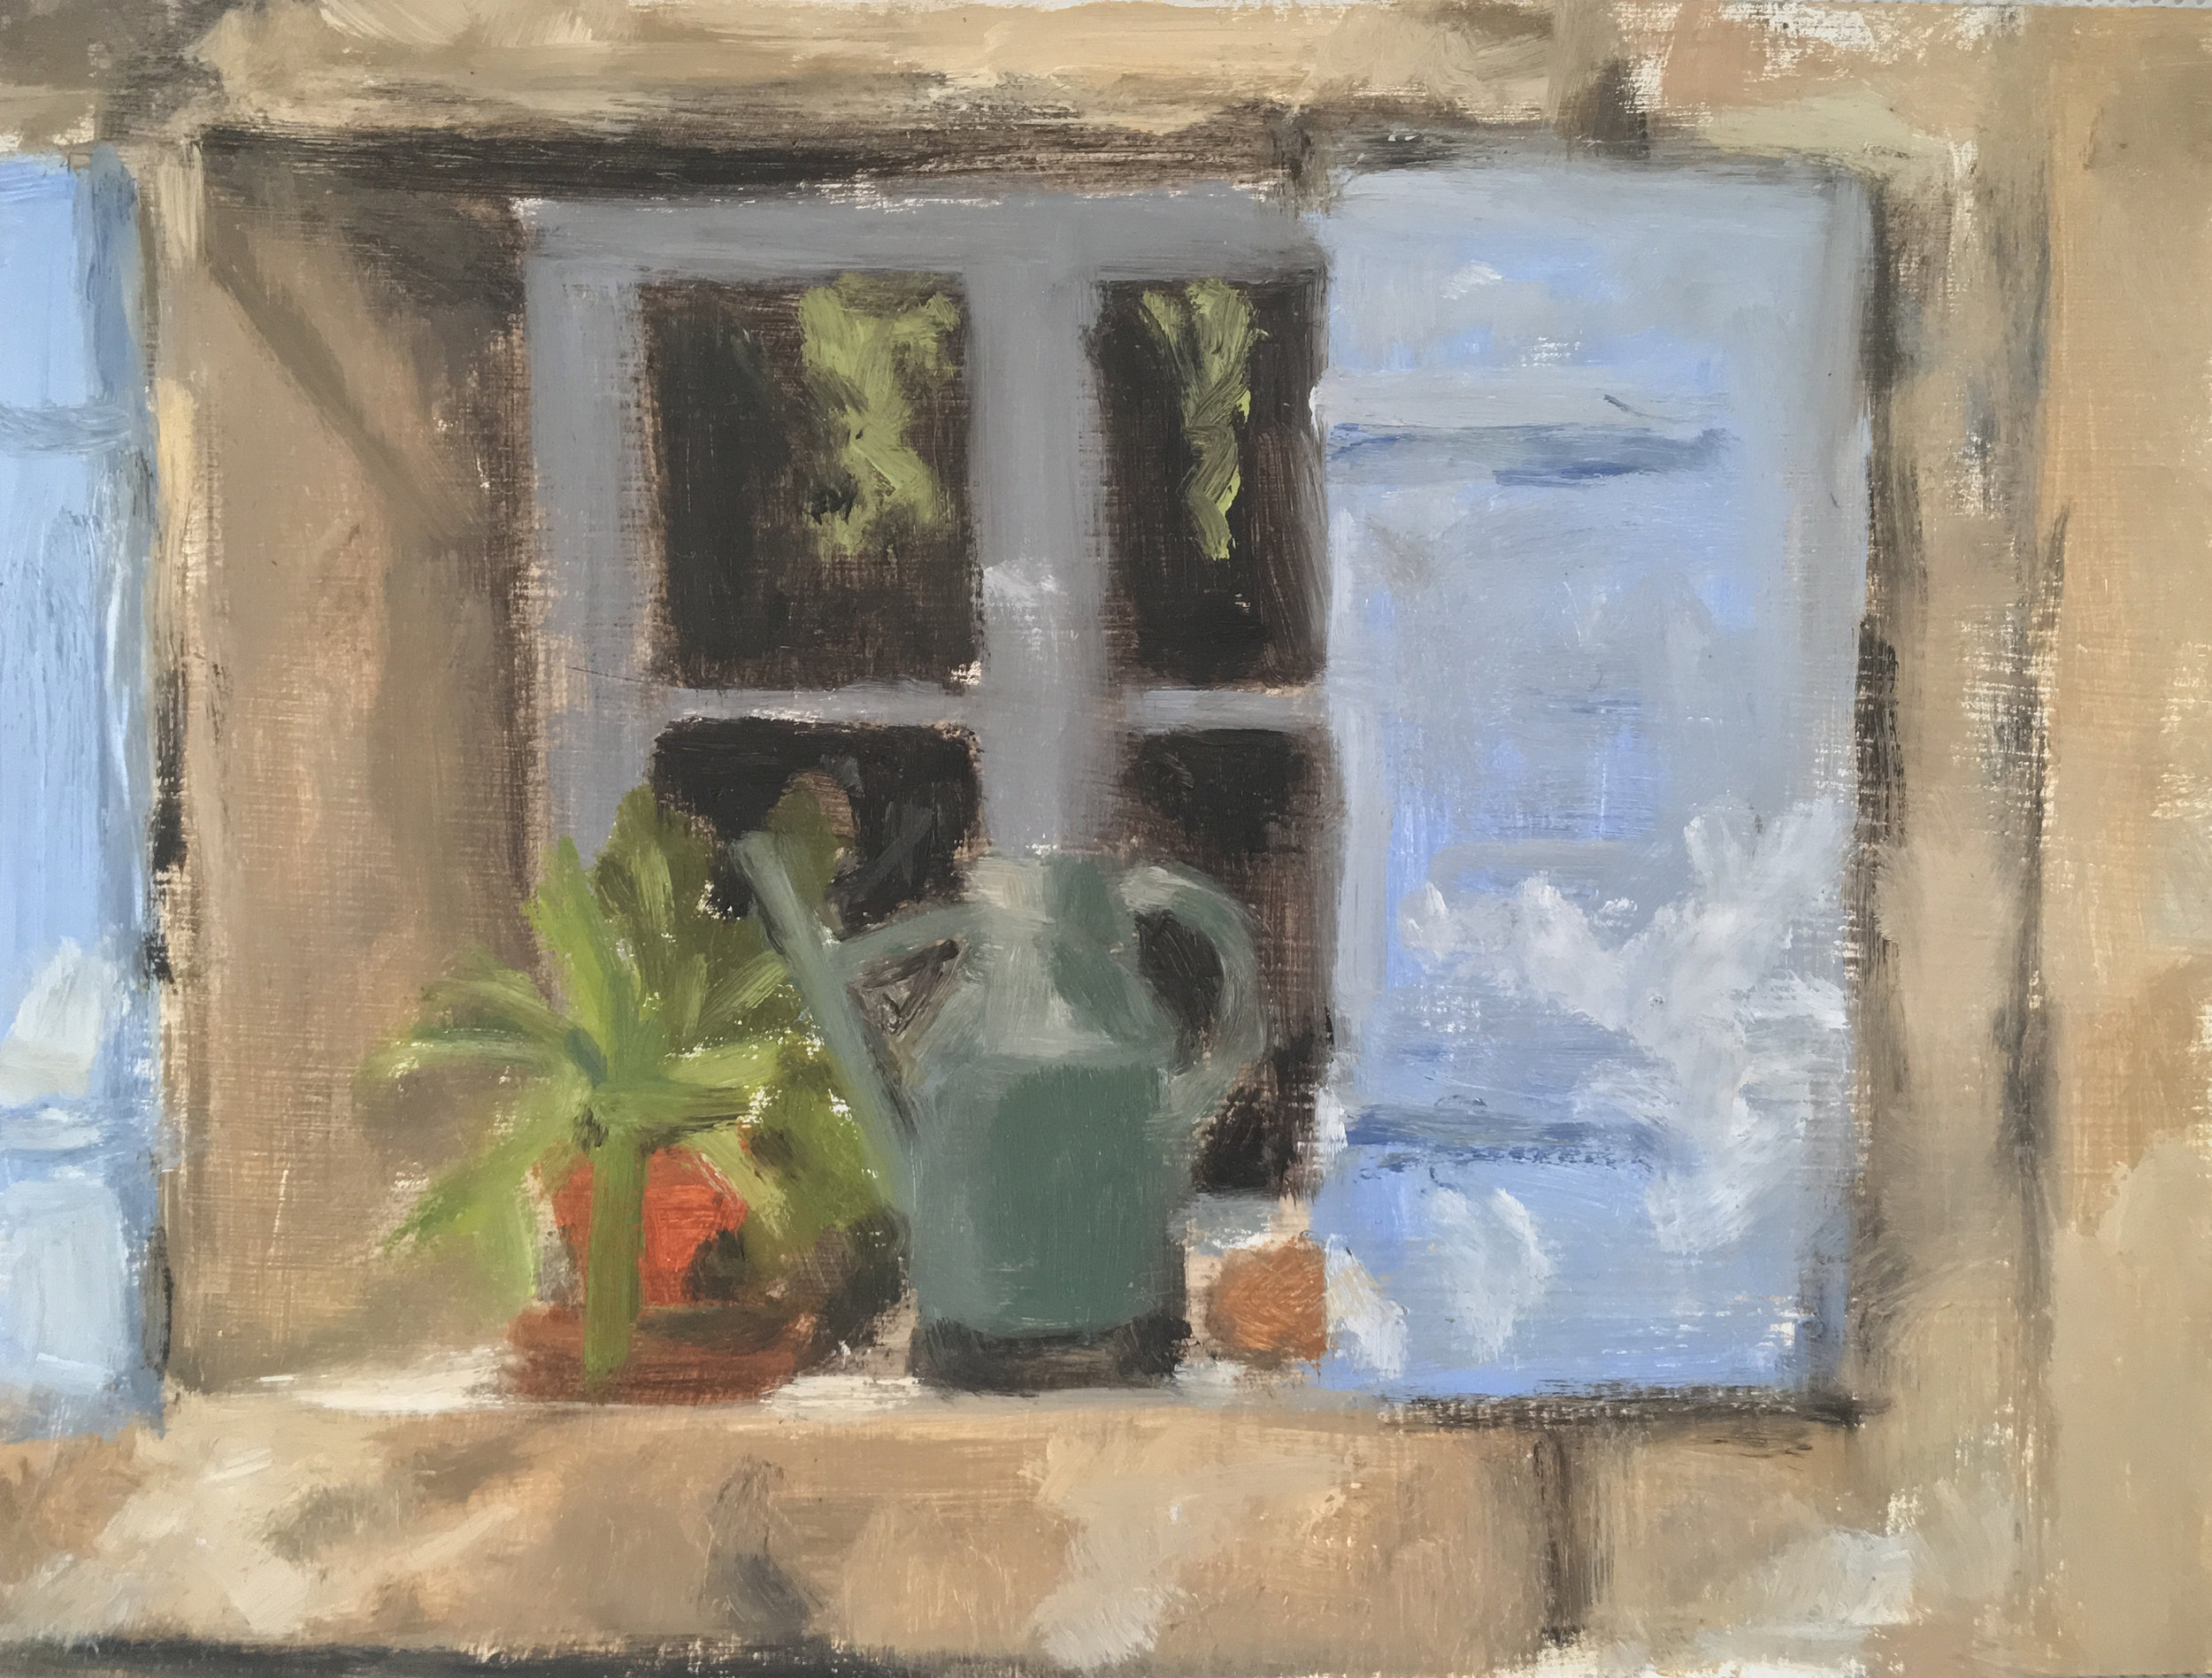 The Kitchen Window  Oil on panel  6 x 8 inch  Available